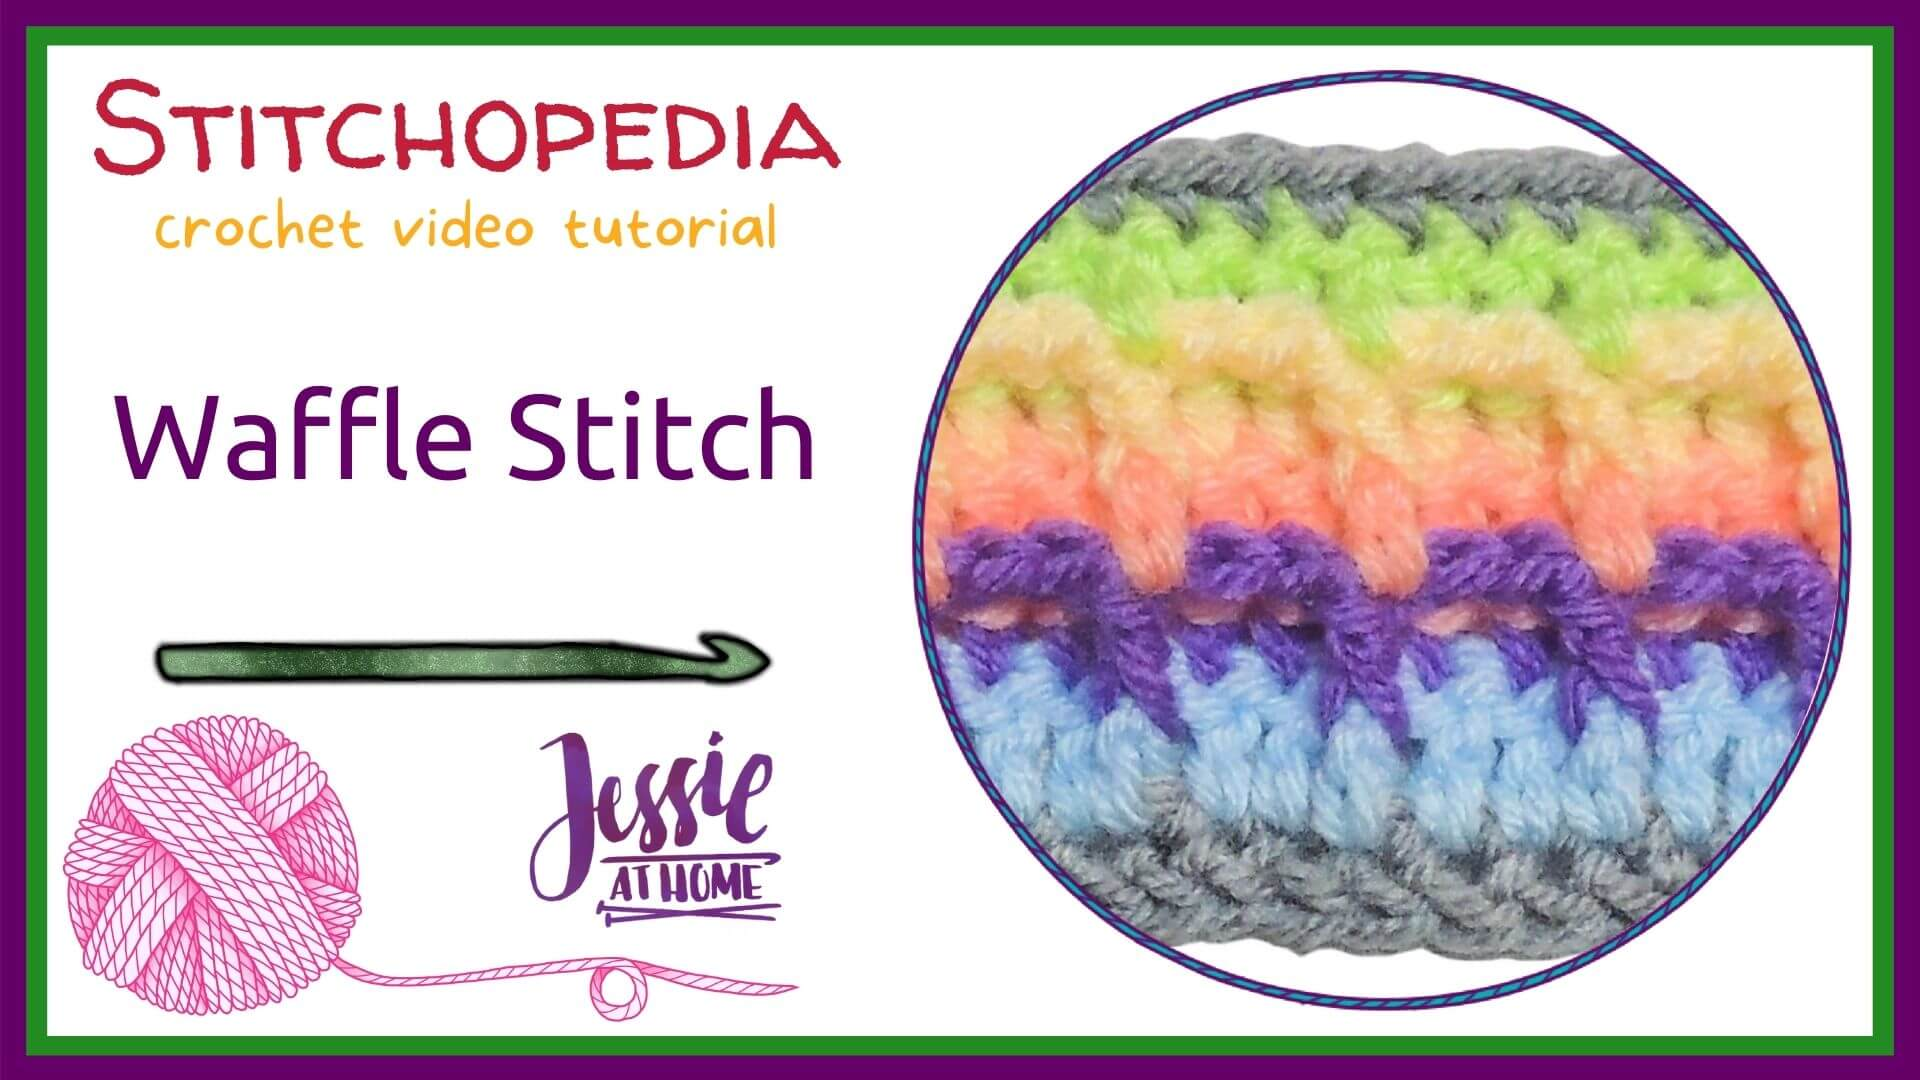 """white rectangle with a circle on the right with an image of a crochet waffle stitch swatch in pastels, and on the left there is text which reads """"stitchopedia crochet video tutorial"""", """"waffle stitch"""", and """"Jessie At Home"""""""